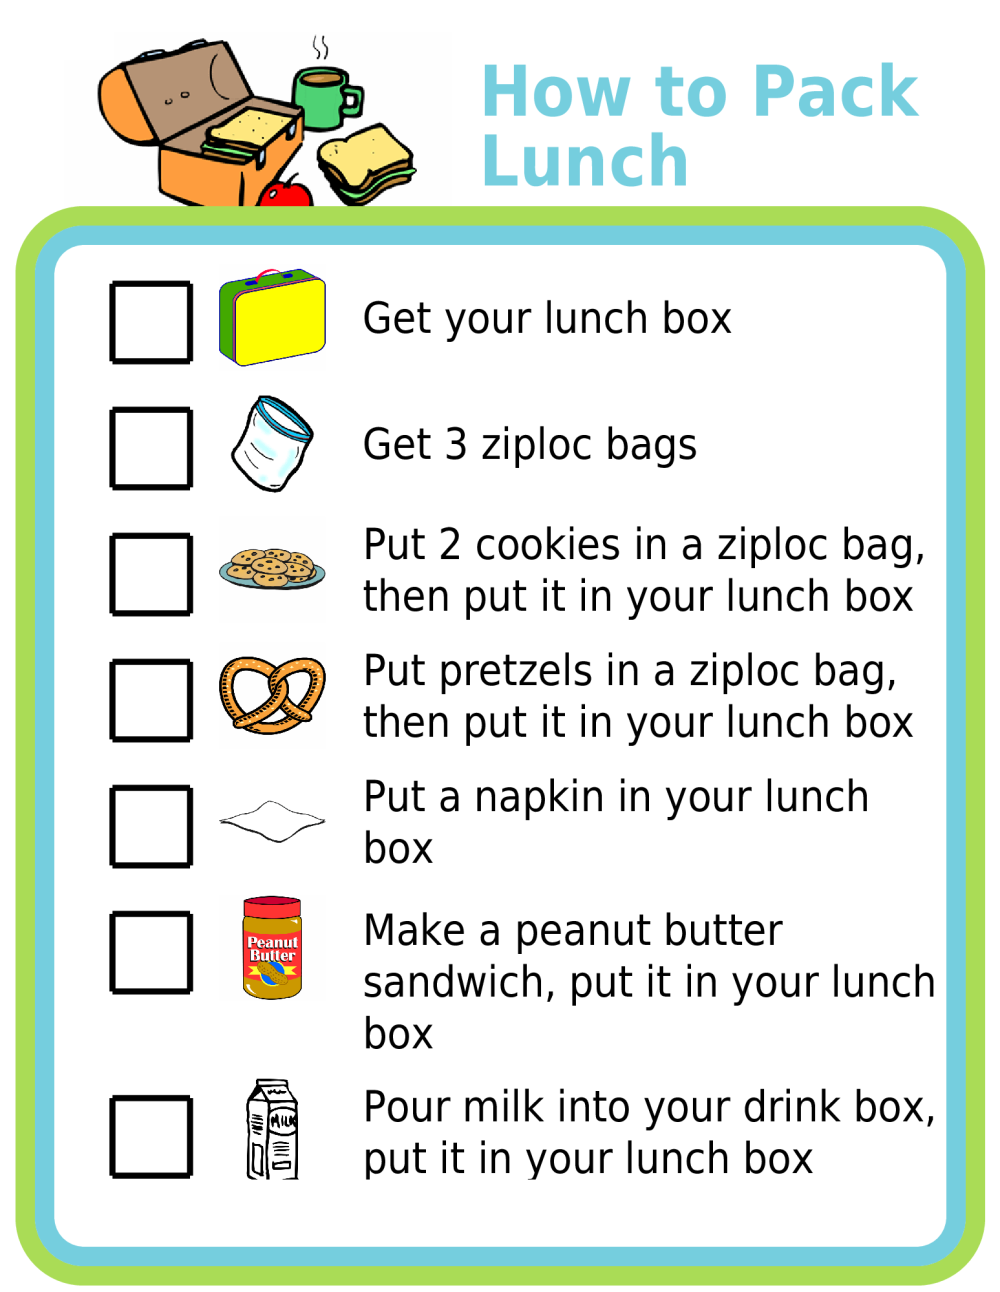 Picture checklist for how to pack lunch